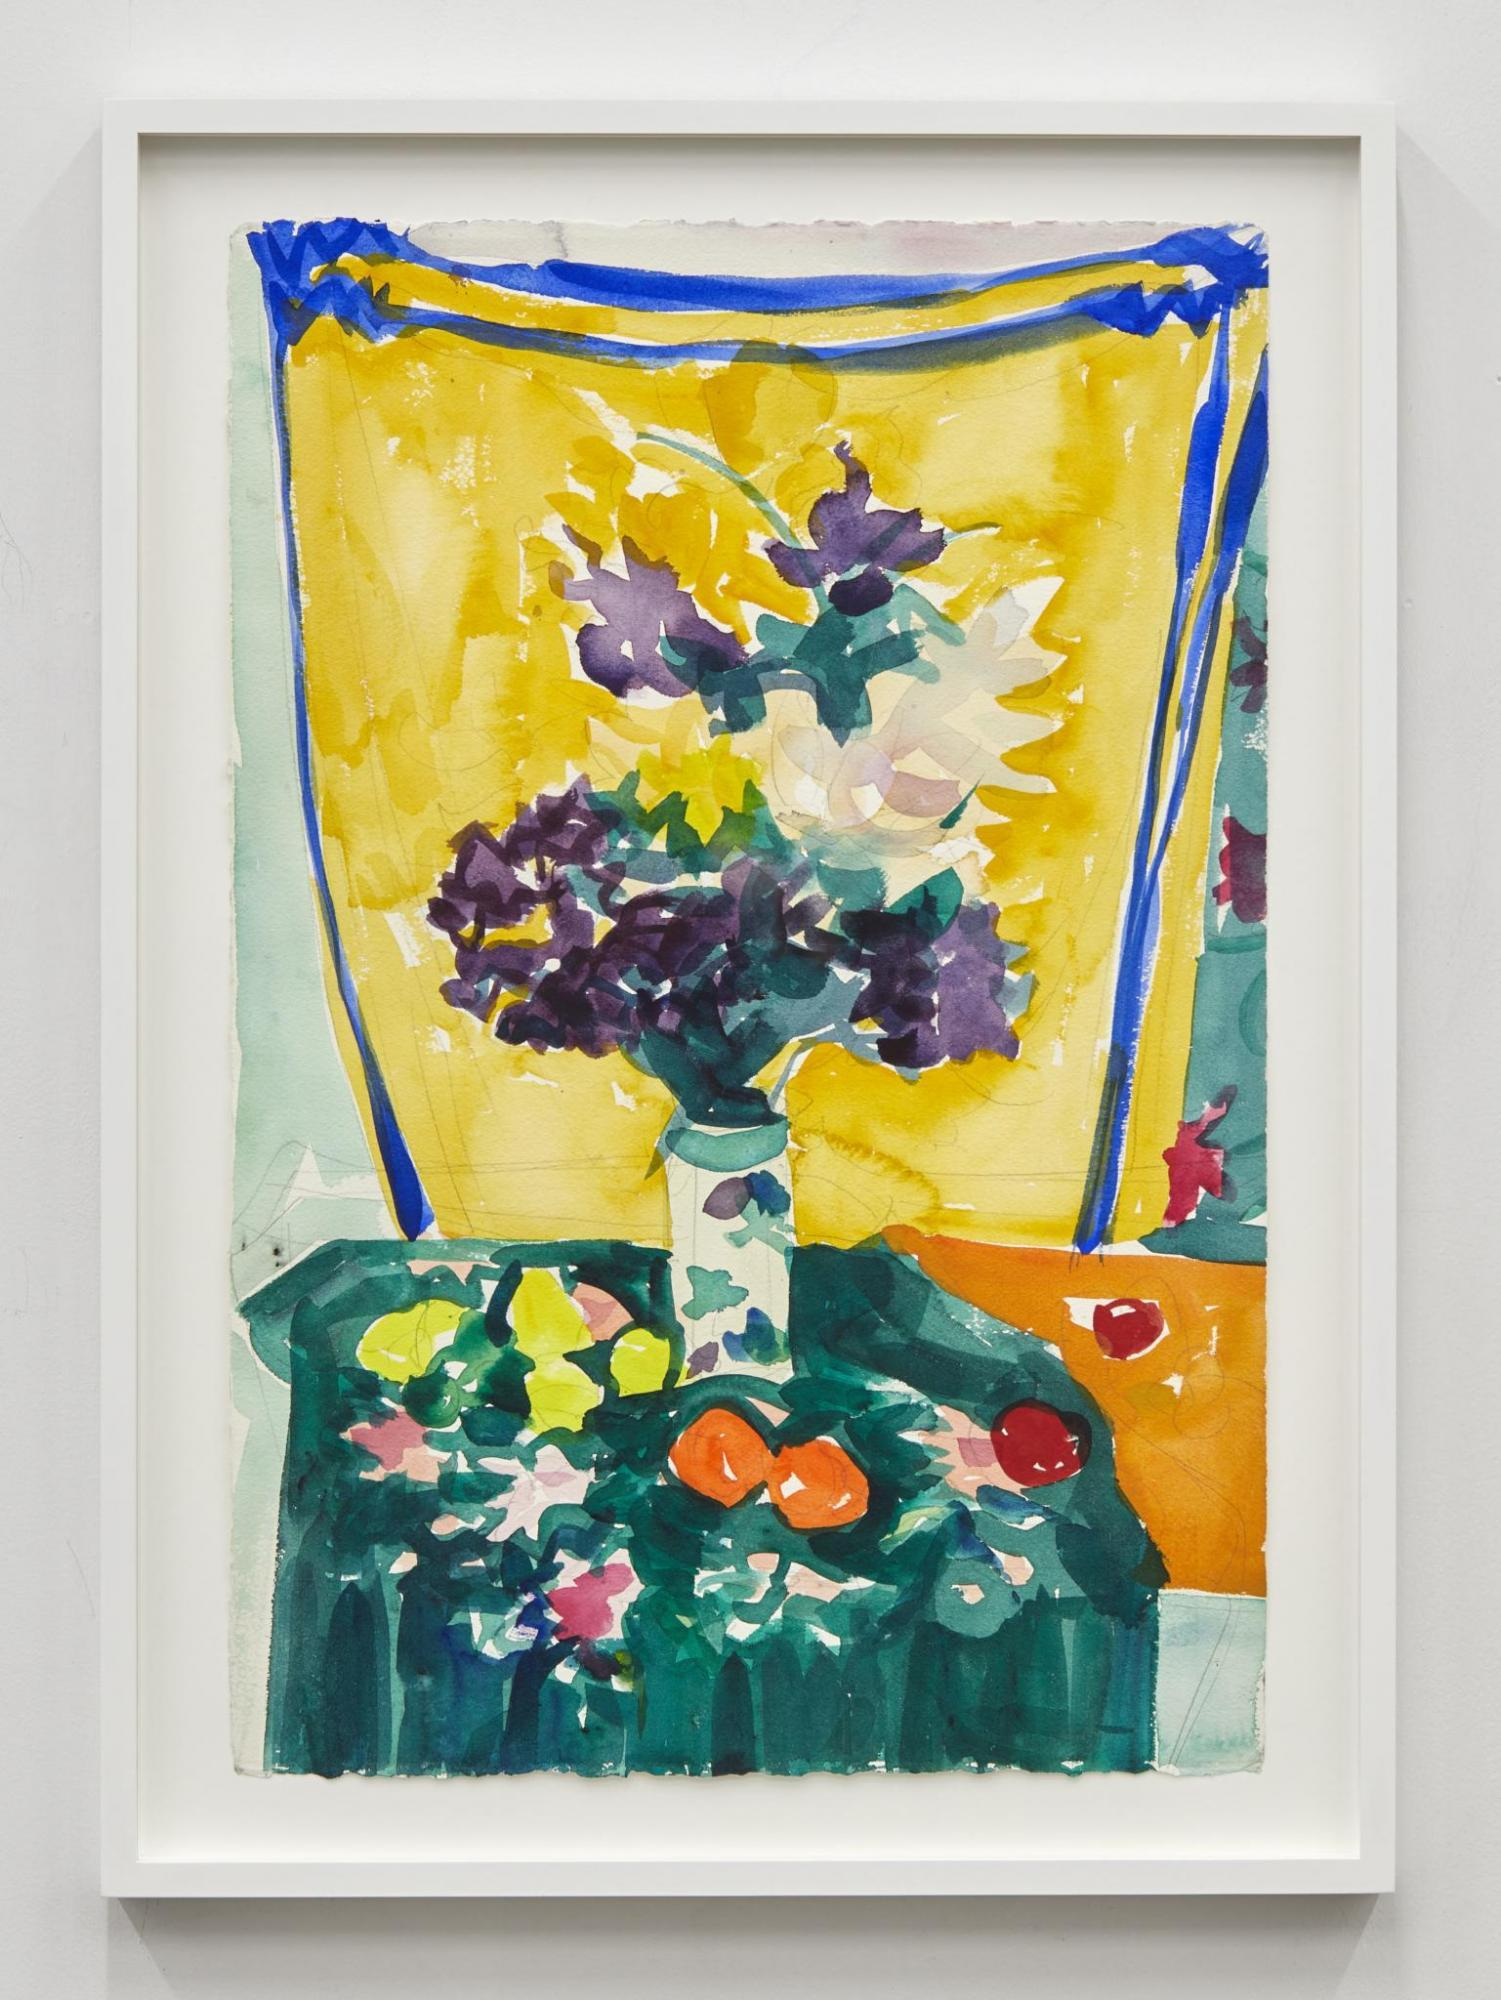 Stephanie Crawford,/Flowers on Tablecloth/, 2016, watercolor on paper,  55.88 × 38.1 cm